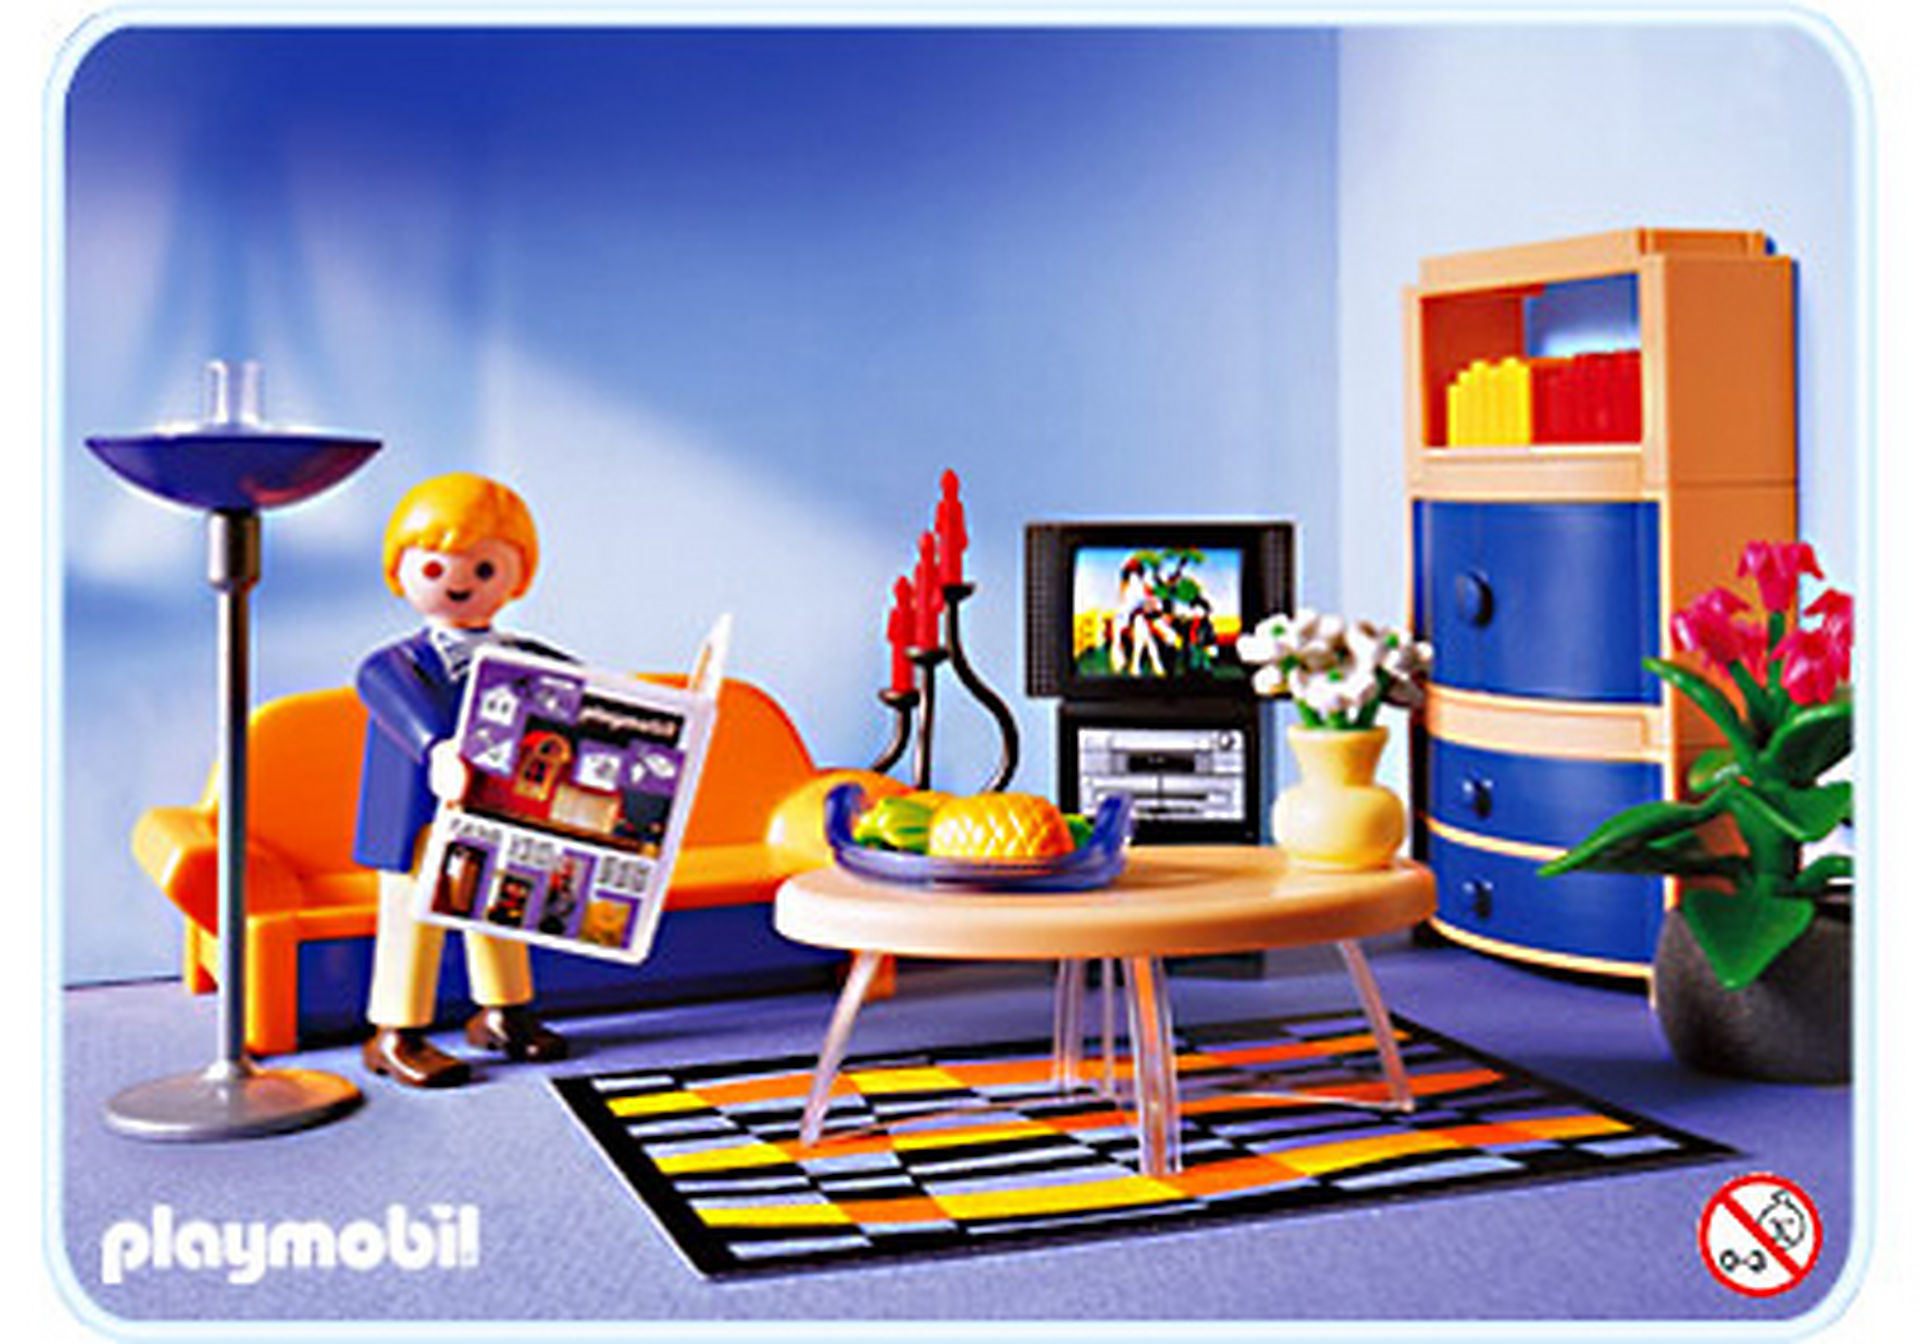 http://media.playmobil.com/i/playmobil/3966-A_product_detail/Modernes Wohnzimmer